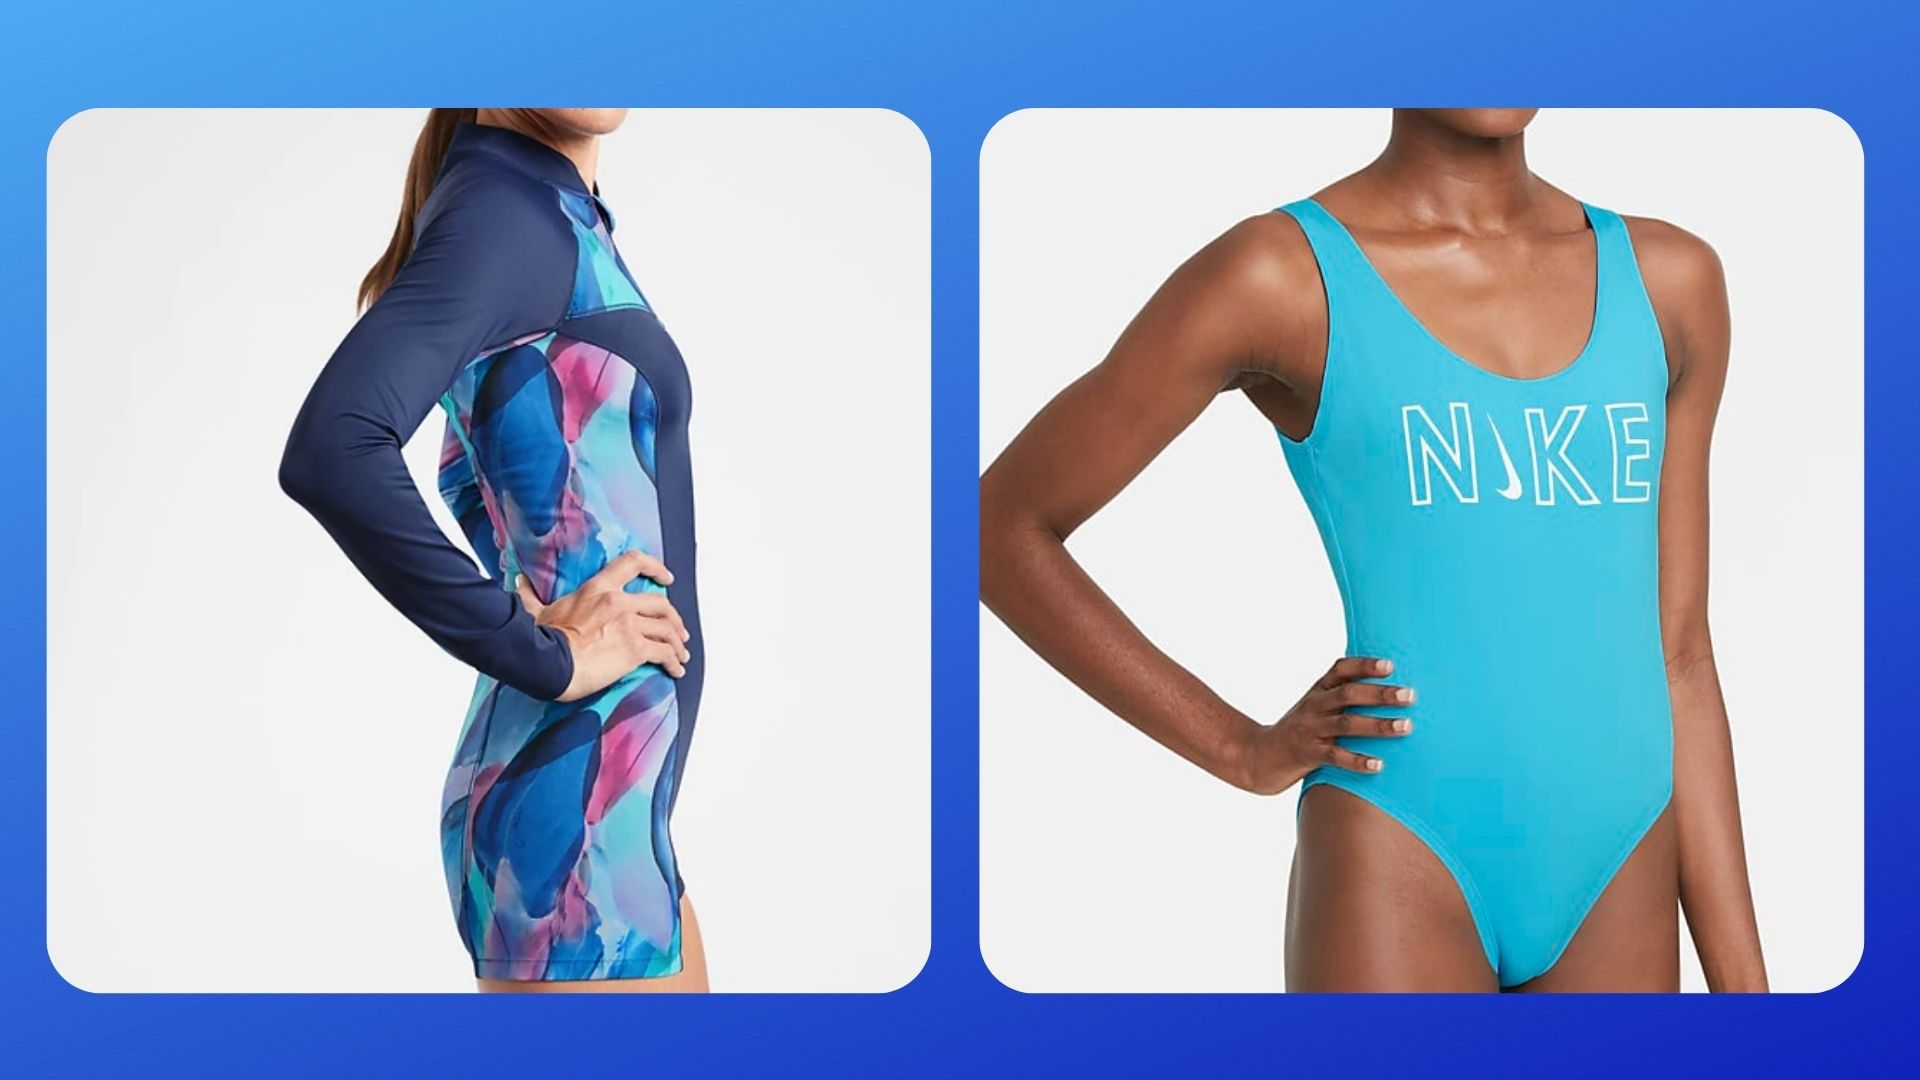 Cbec3bd0 ae77 11eb a337 05abf53dfc2b The best women 8217 s swimwear to go straight from working out to the water 8211 Yahoo Sports